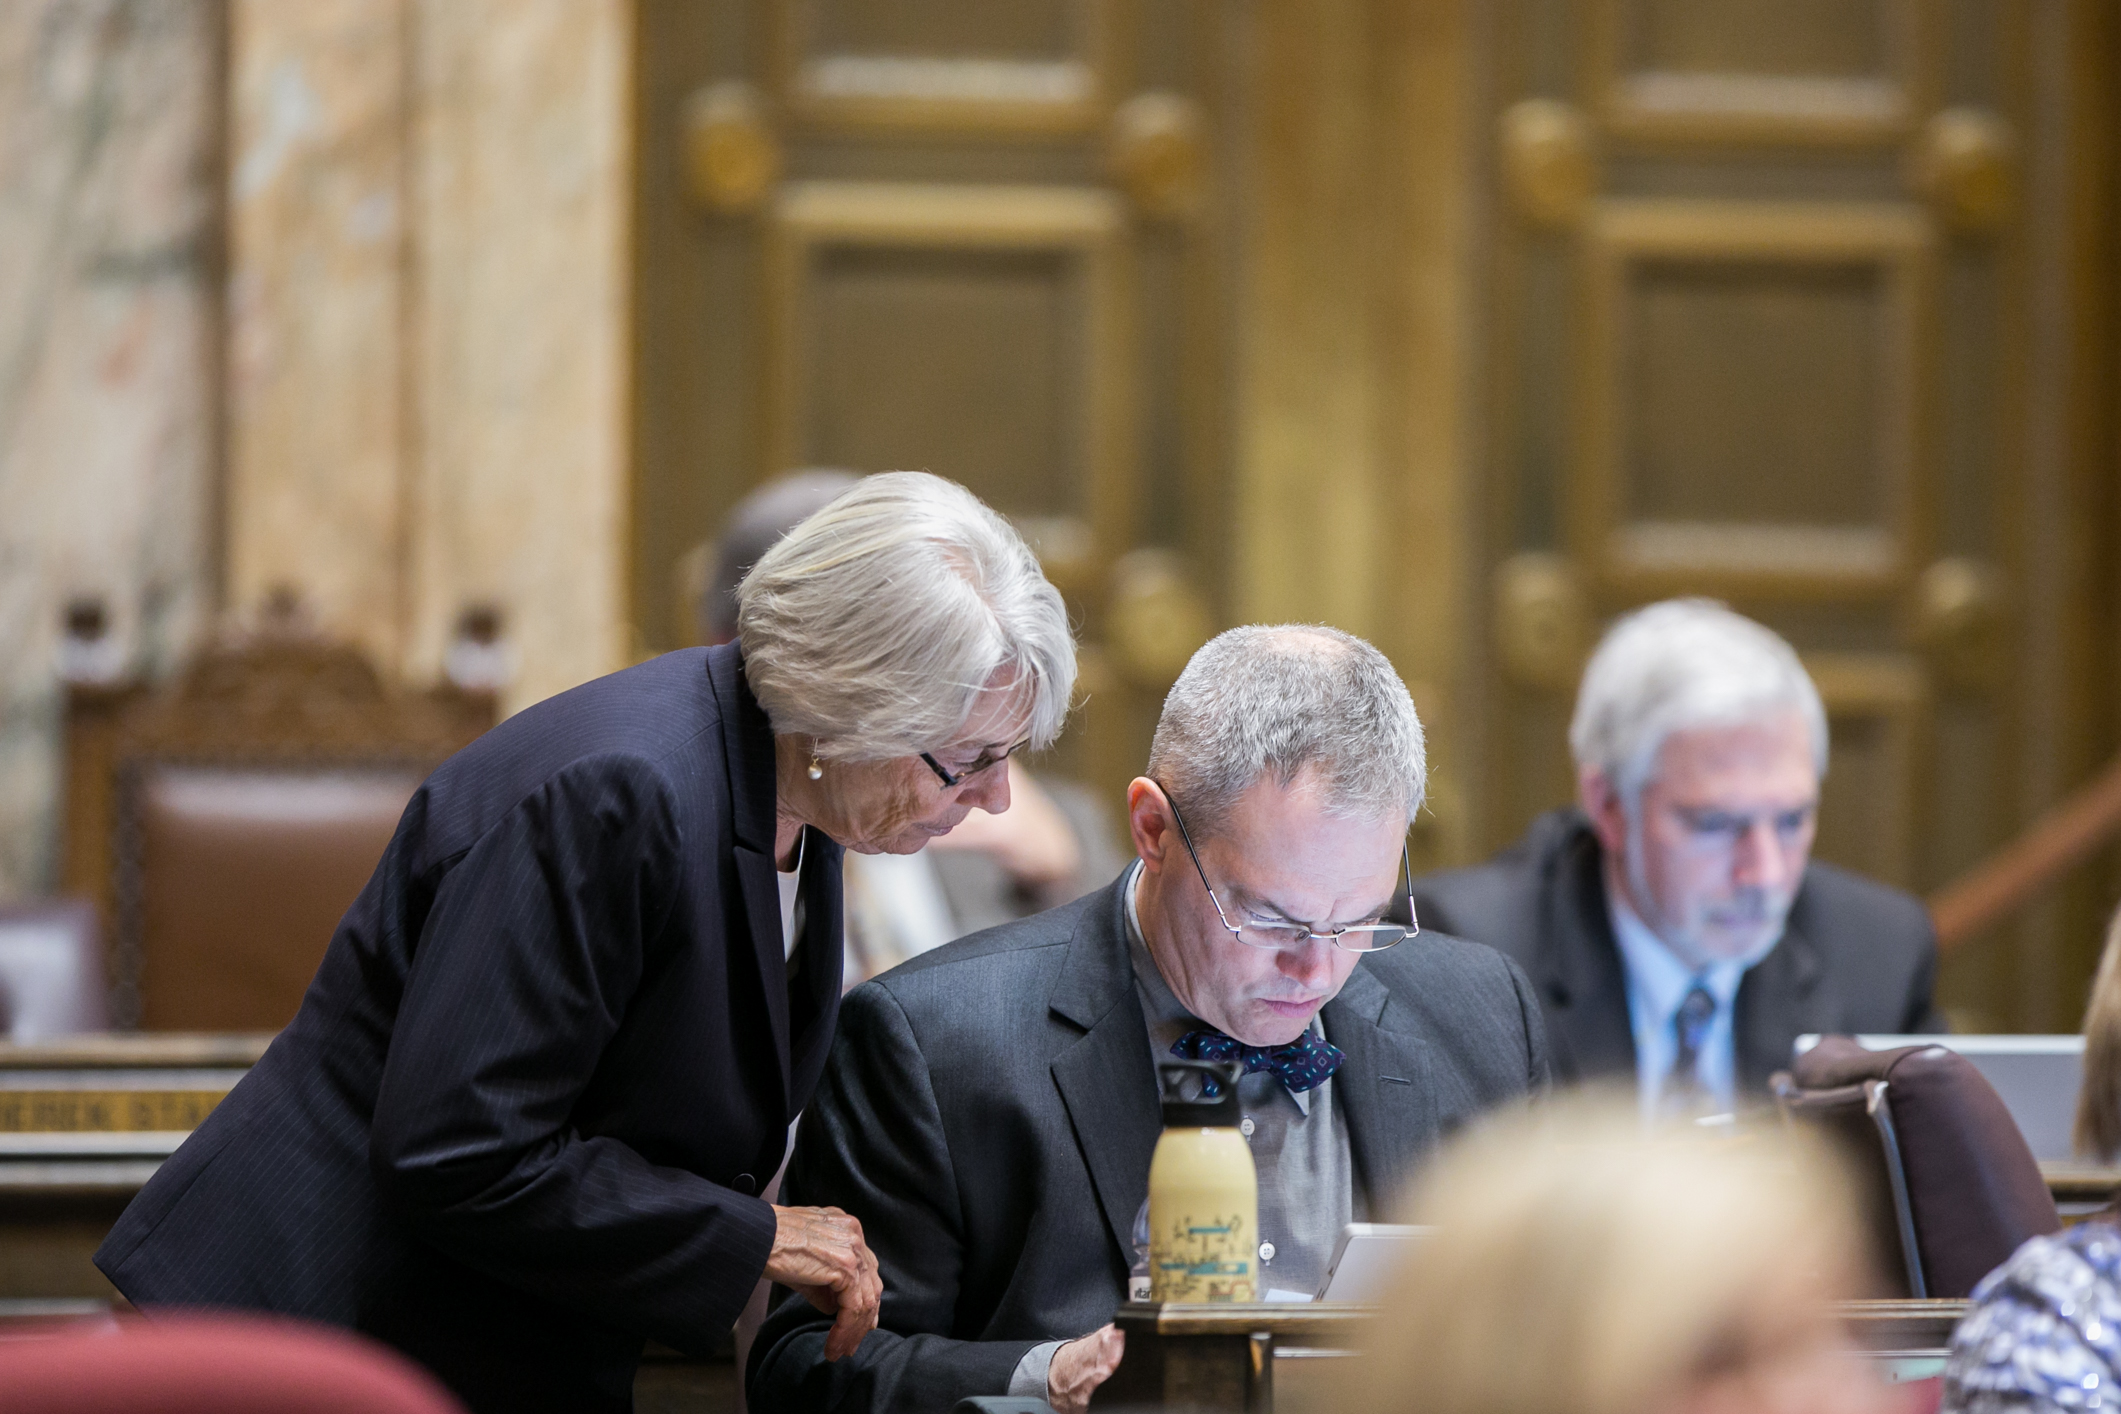 The Washington State House of Representatives convenes for floor session March 9, 2015, the 57th day of the legislative session.